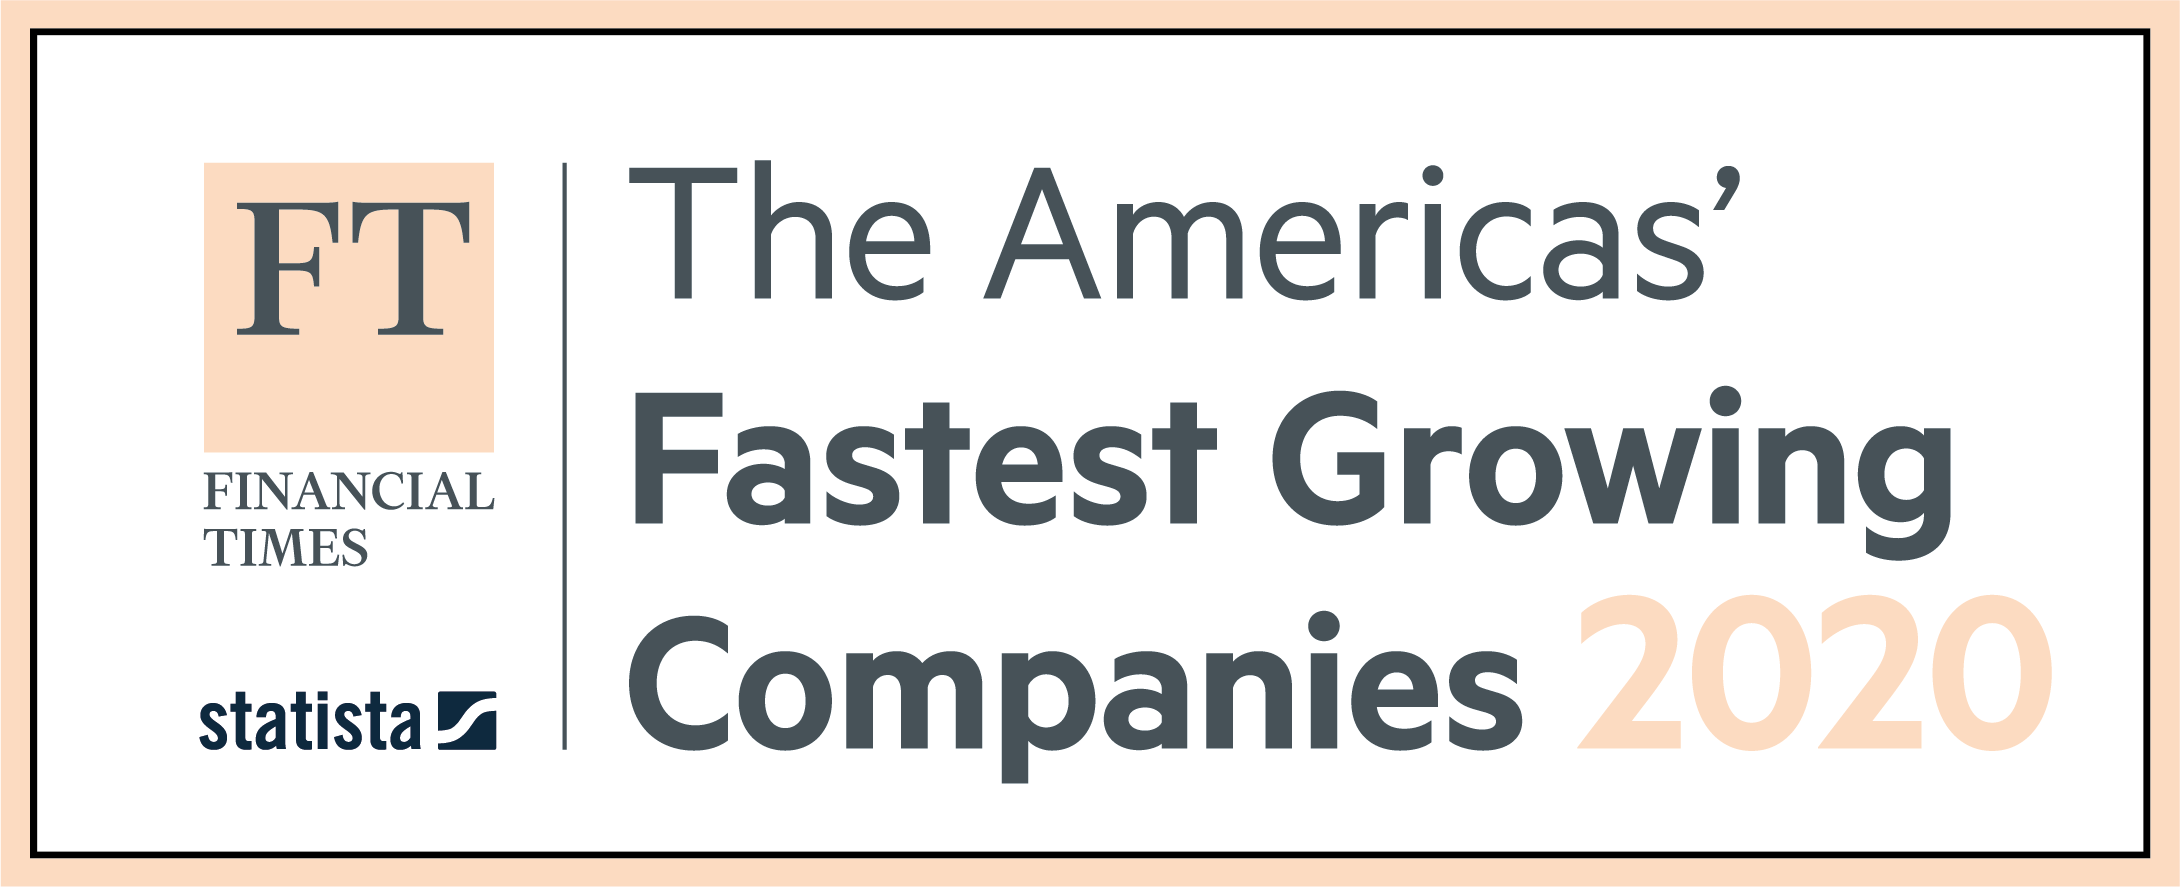 Financial Times and Statista: The Americas' Fastest Growing Companies 2020